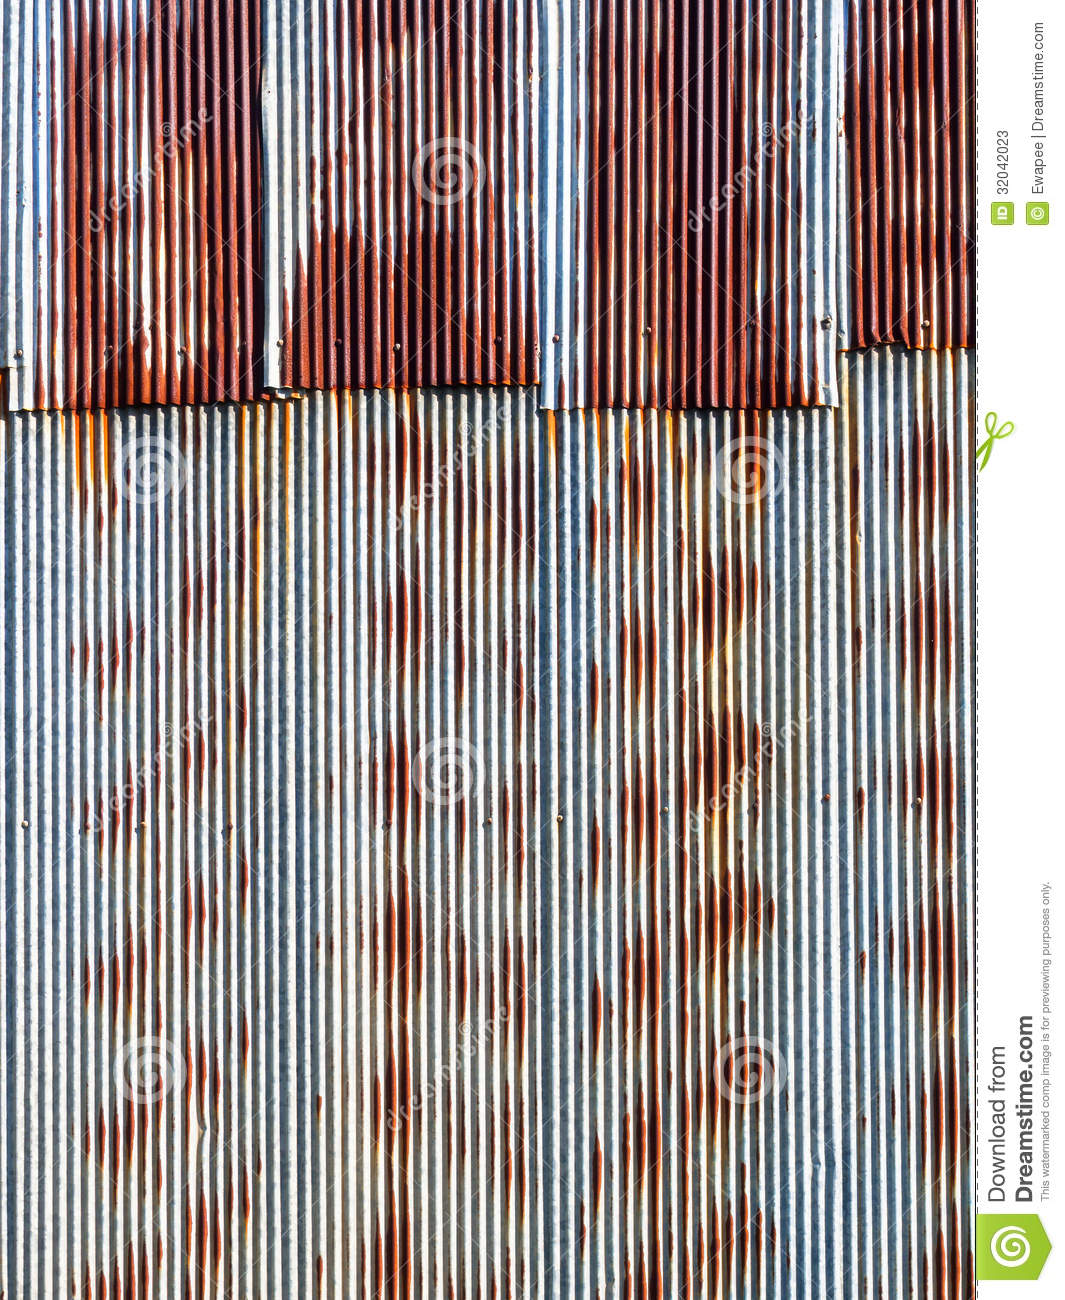 Rusted Tin Walls : Rusty corrugated metal background stock image